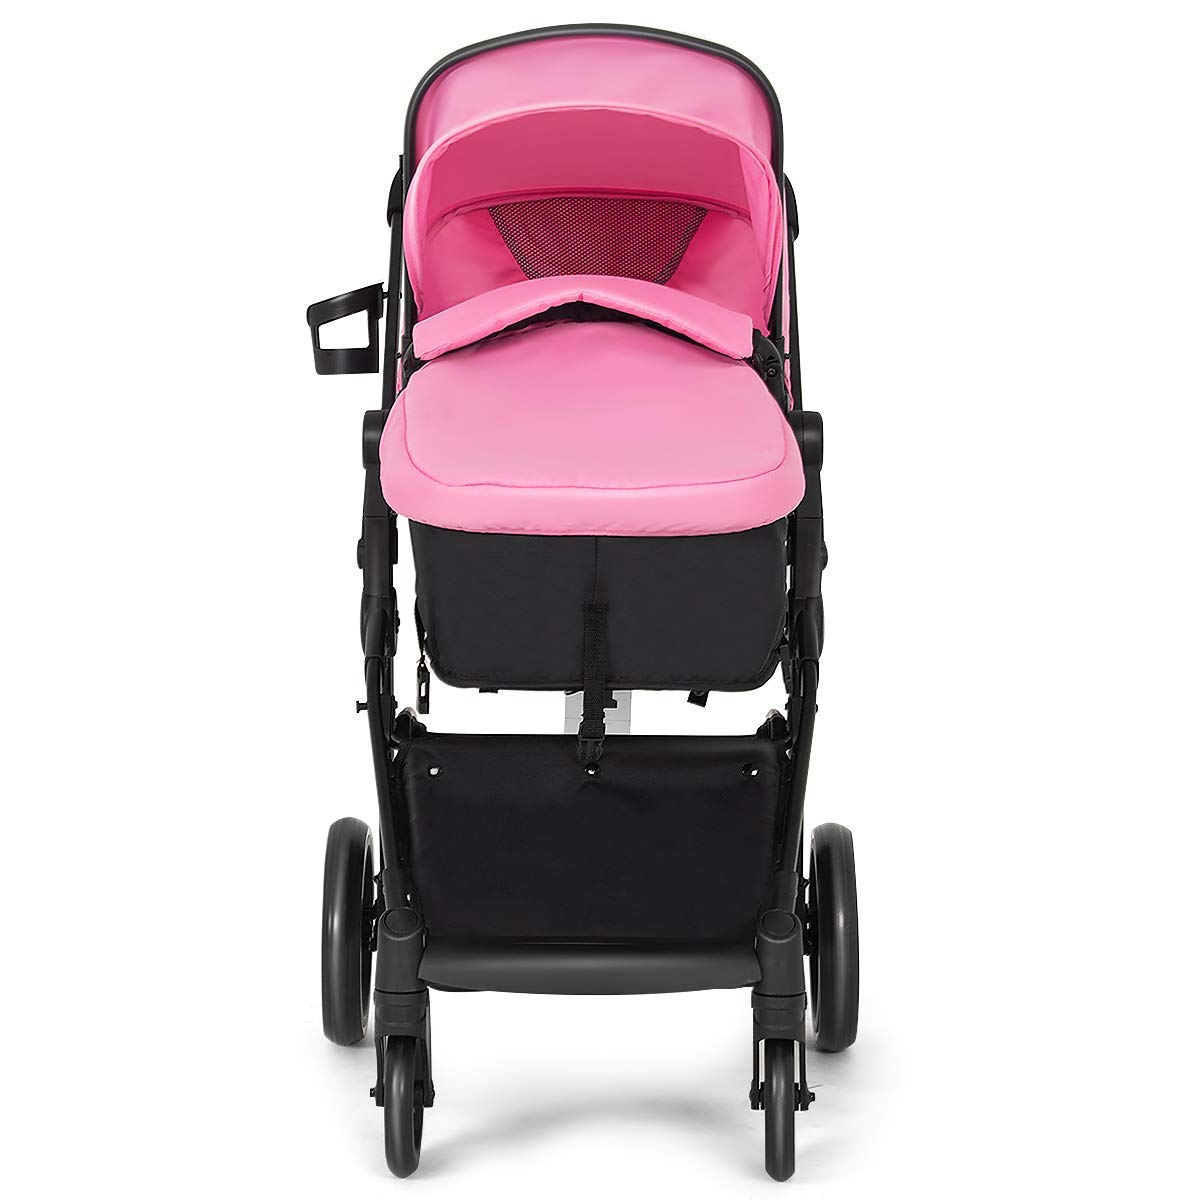 Costzon Baby Stroller, 2 in 1 Convertible Carriage Bassinet to Stroller, Pushchair with Foot Cover, Cup Holder, Large Storage Space, Wheels Suspension, 5-Point Harness (Pink Color) by Costzon (Image #8)